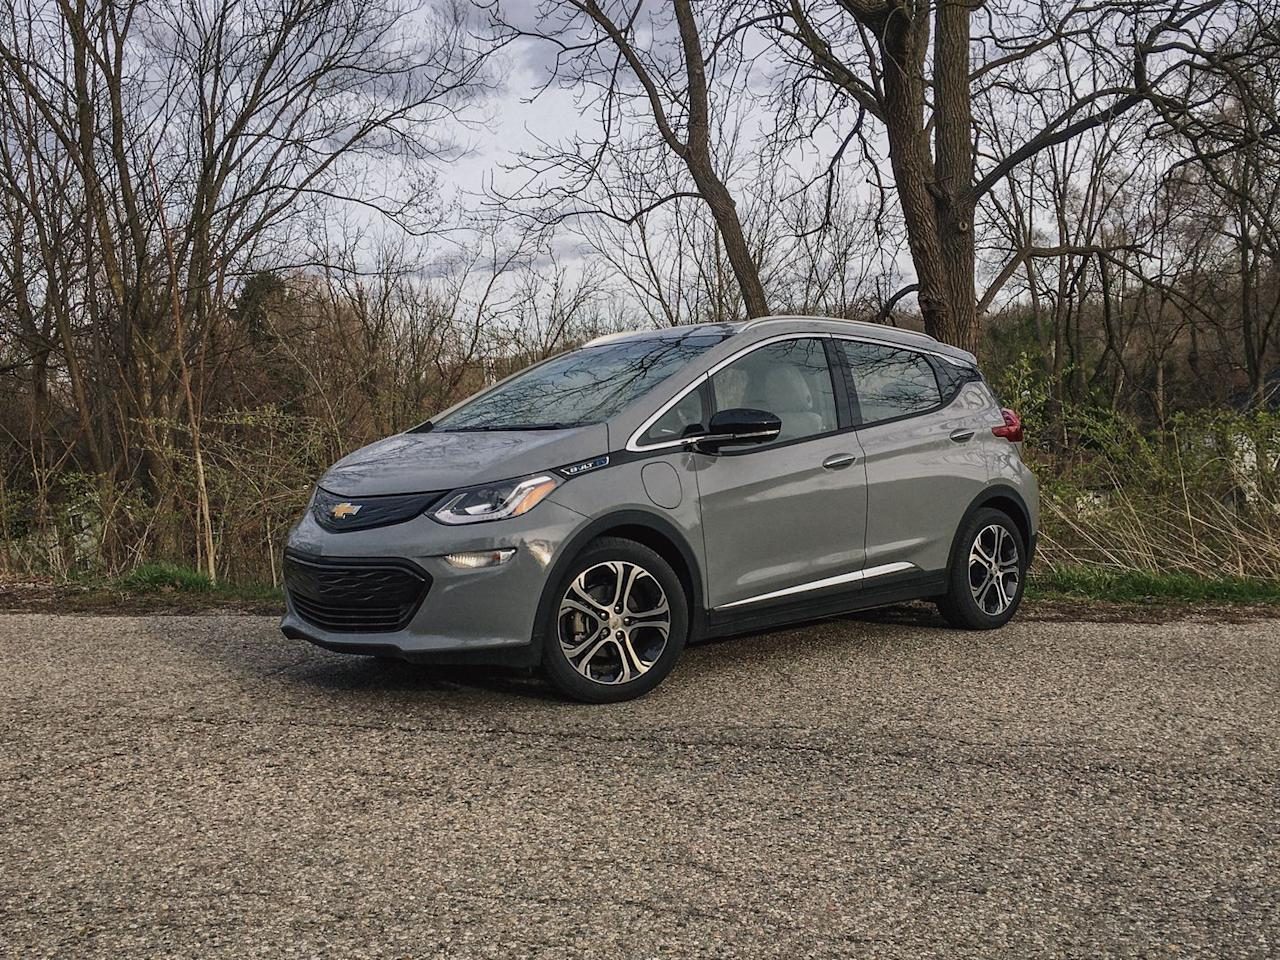 """<p>The <a href=""""https://www.caranddriver.com/chevrolet/bolt-ev"""" target=""""_blank"""">2020 Bolt EV</a> is an all-electric hatchback with a long driving range, spacious cabin, and affordable price tag. Capable of traveling up to 259 miles on a single charge and starting at less than $40,000, the Bolt attempts to make EVs more accessible to everyone. Its electric motor provides almost-instant acceleration, and the <a href=""""https://www.caranddriver.com/chevrolet"""" target=""""_blank"""">Chevy</a> hatchback is truly fun to drive. An affordable fast-charging option and an innovative <a href=""""https://www.caranddriver.com/features/a23477930/electric-car-one-pedal-driving/"""" target=""""_blank"""">regenerative-braking</a> paddle also enhance the user experience. Likewise, people will appreciate its roomy accommodations, available infotainment and driver-assistance technologies, and crossover-like cargo capacity. While everyone won't be enchanted by the 2020 Bolt's staid looks and cheap interior, they'll likely appreciate everything else it offers.</p><p><a class=""""body-btn-link"""" href=""""https://www.caranddriver.com/chevrolet/bolt-ev"""" target=""""_blank"""">Review, Pricing, and Specs</a></p>"""